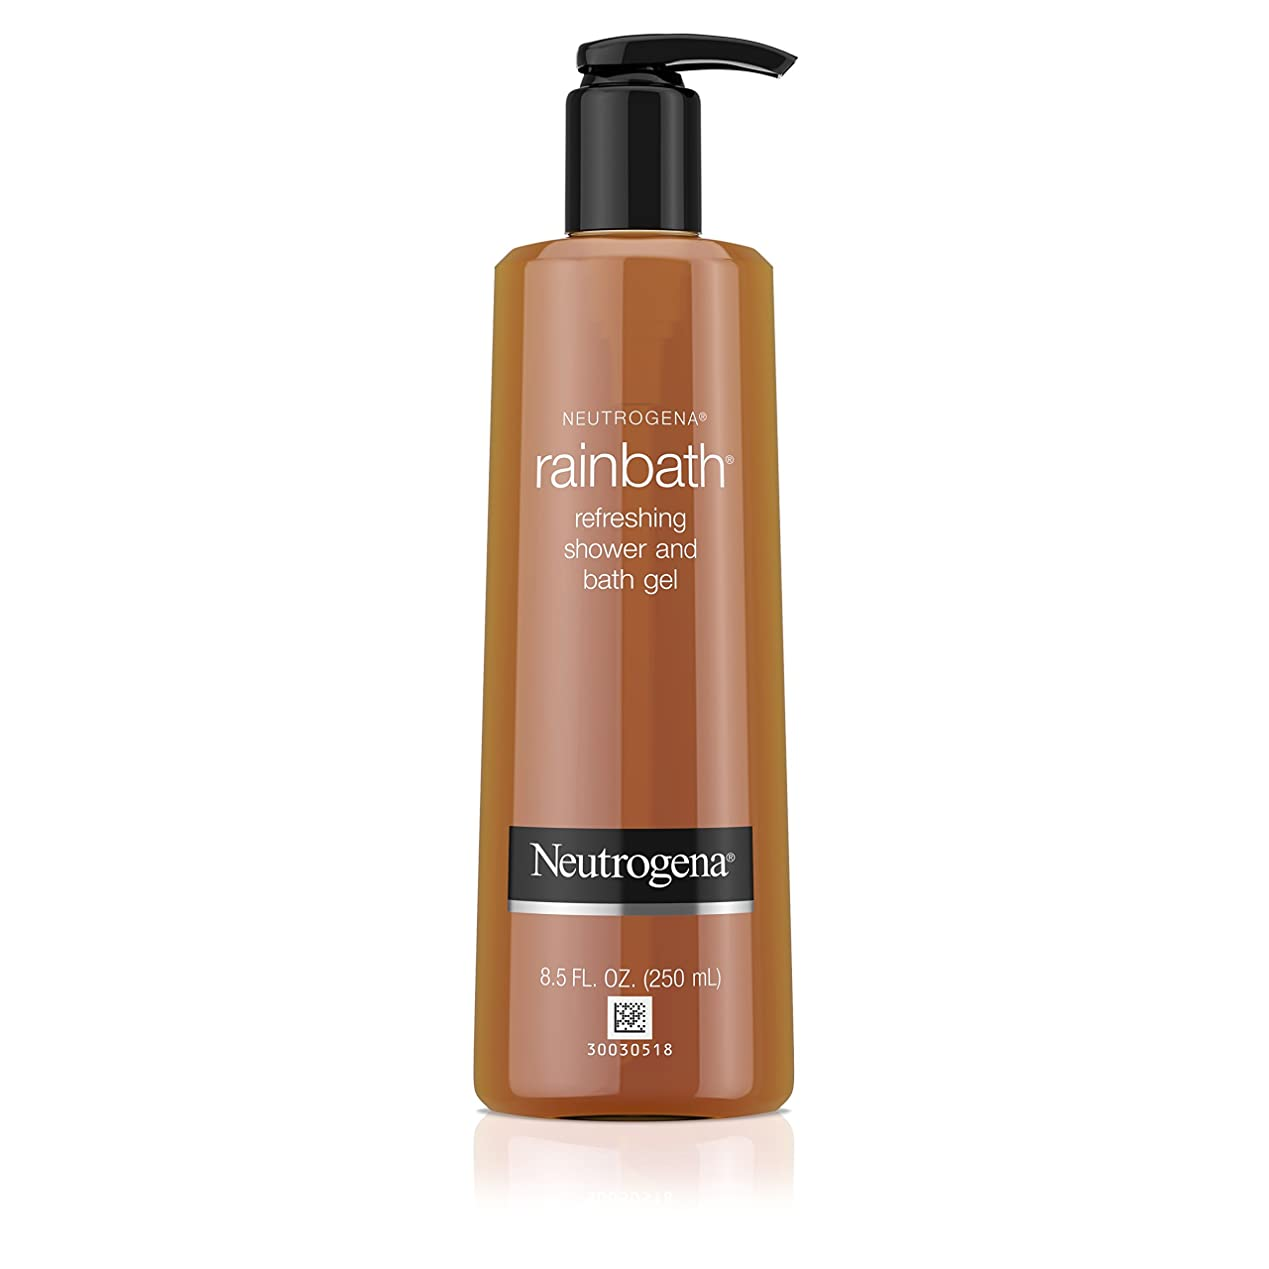 素人宇宙費やすNeutrogena Rainbath Refreshing Shower And Bath Gel (Body Wash), 250ml